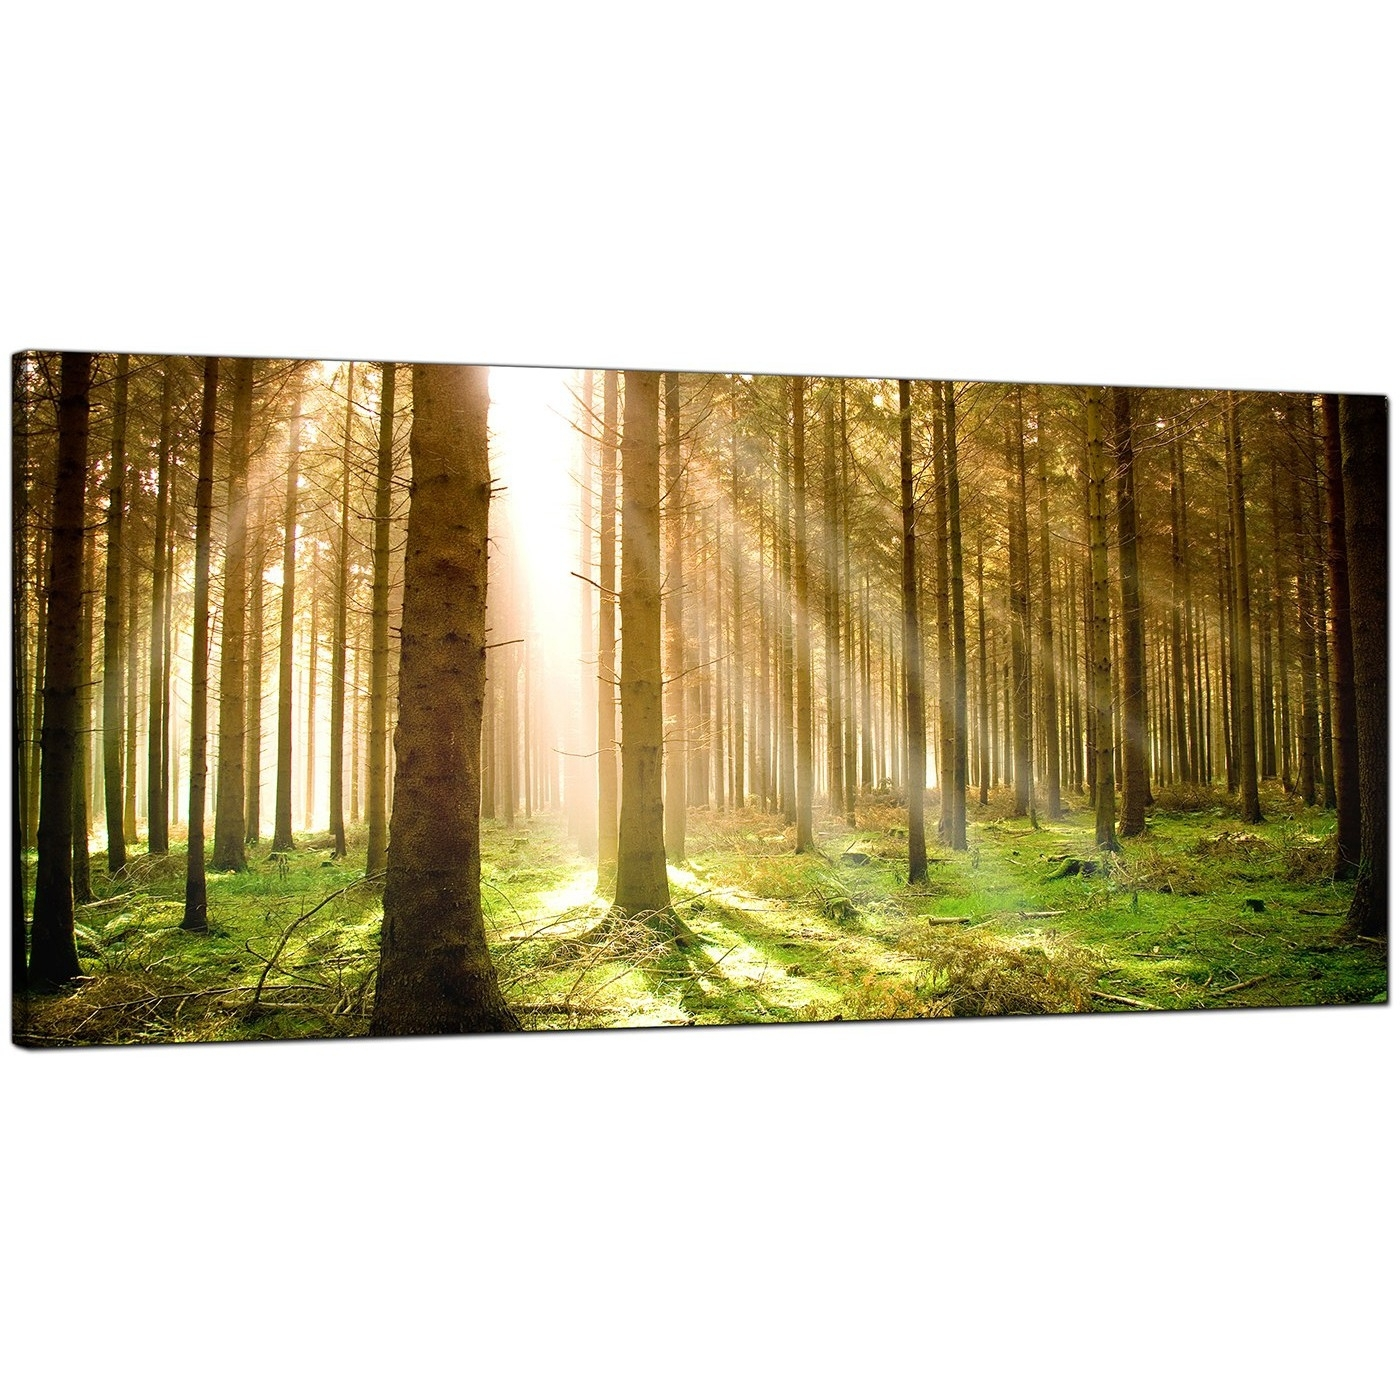 Modern Canvas Prints Of Forest Trees For Your Dining Room In Recent Canvas Wall Art Of Trees (Gallery 7 of 15)